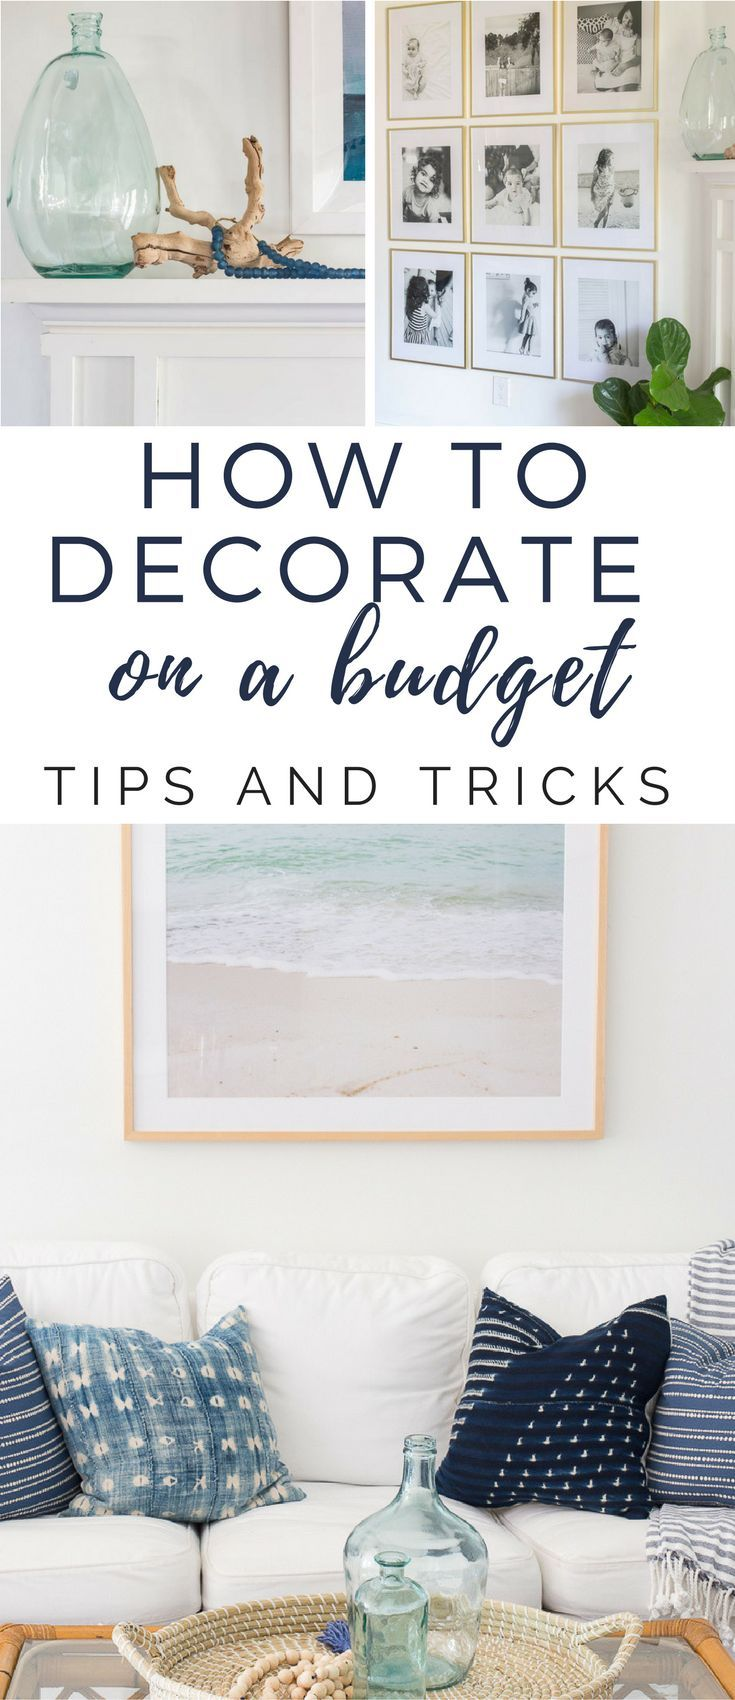 How to Decorate on a Budget - tips and tricks from a thrifty person